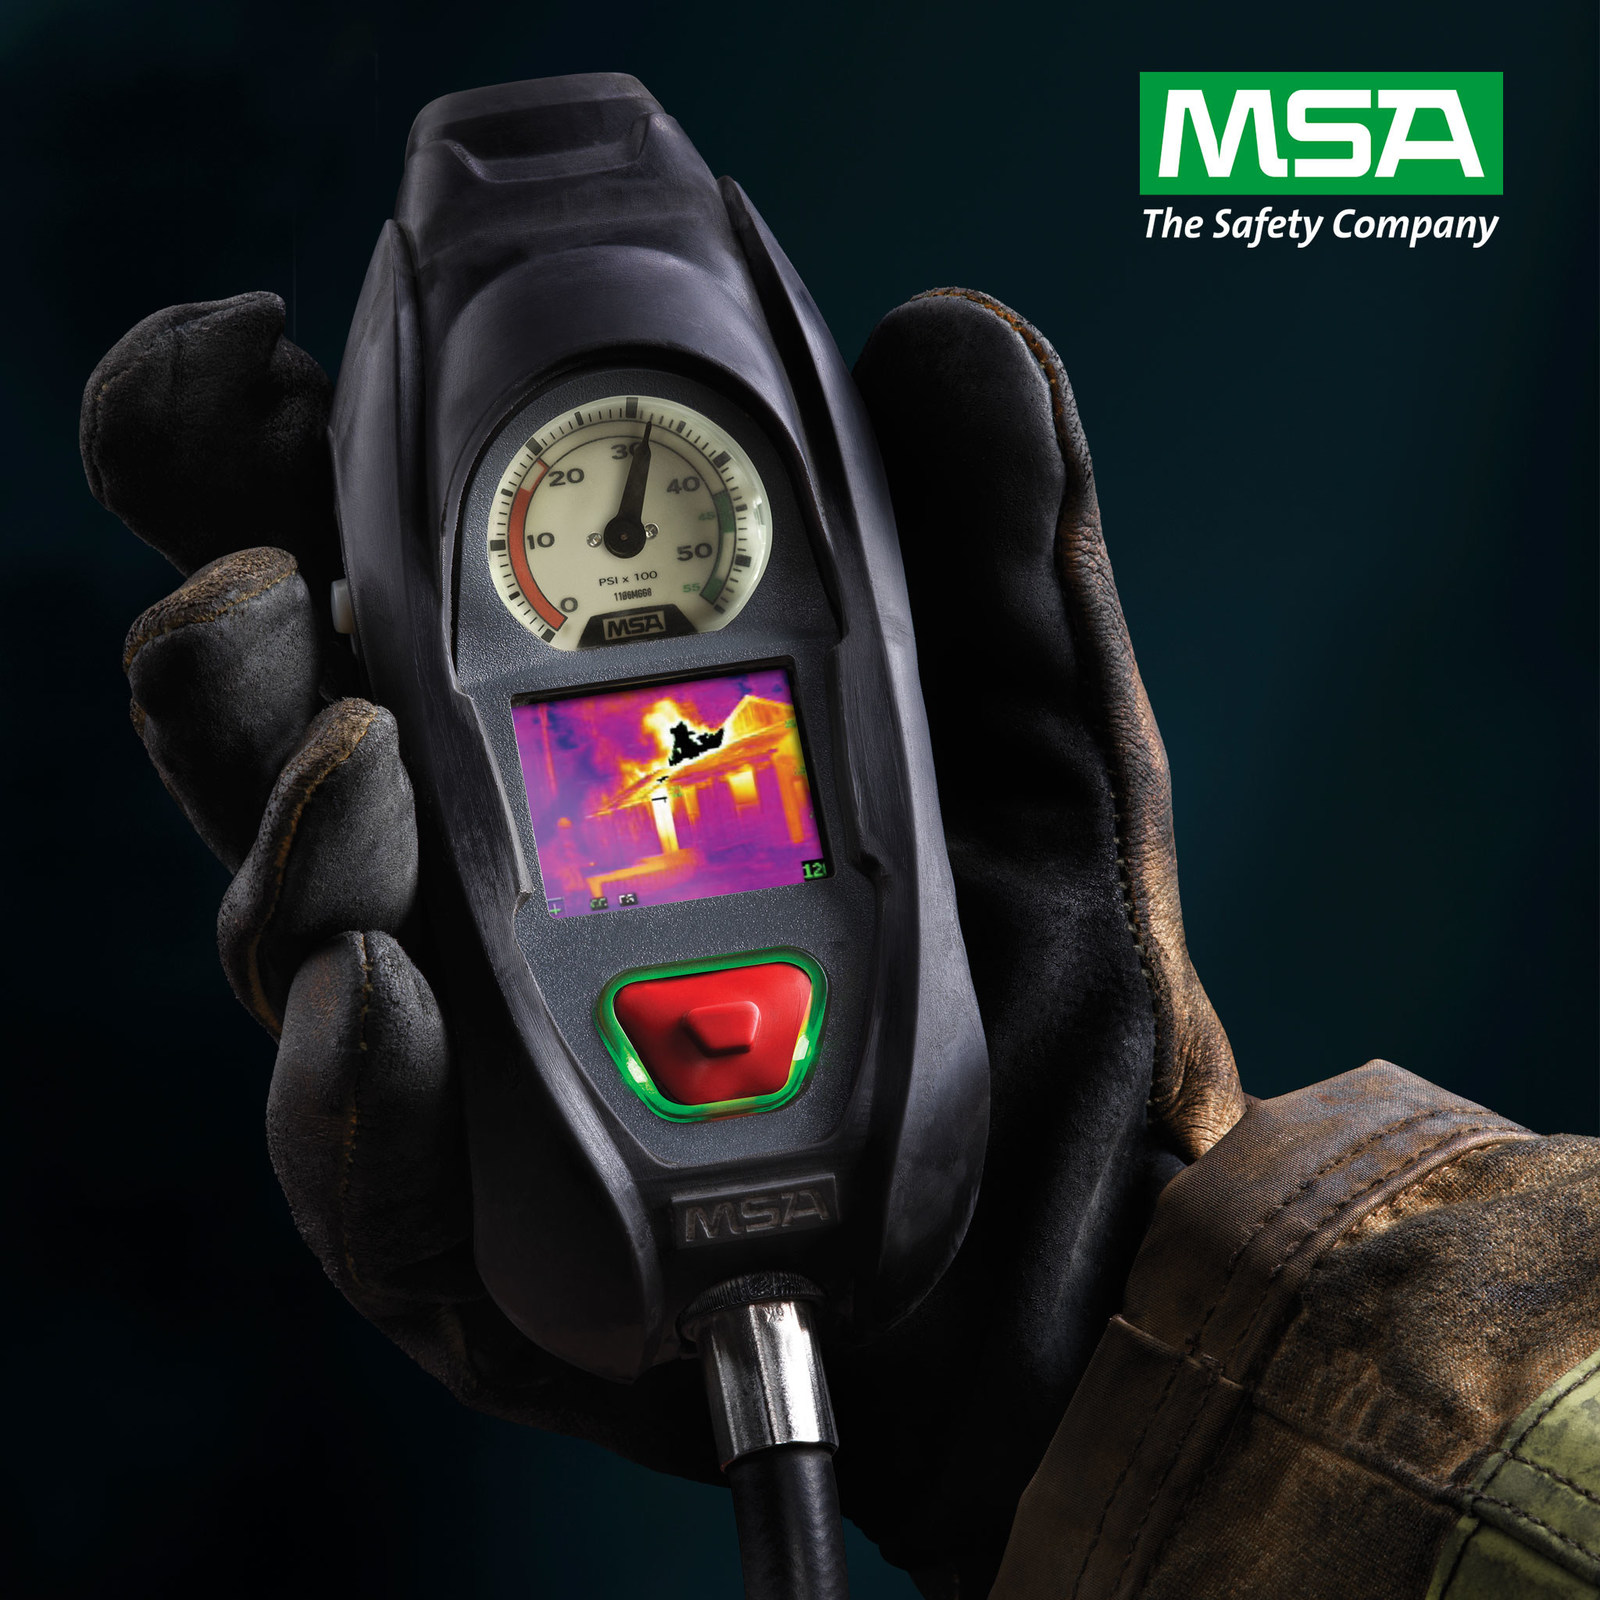 Msa Moves Full Speed At Fdic To Deploy New Thermal Imaging